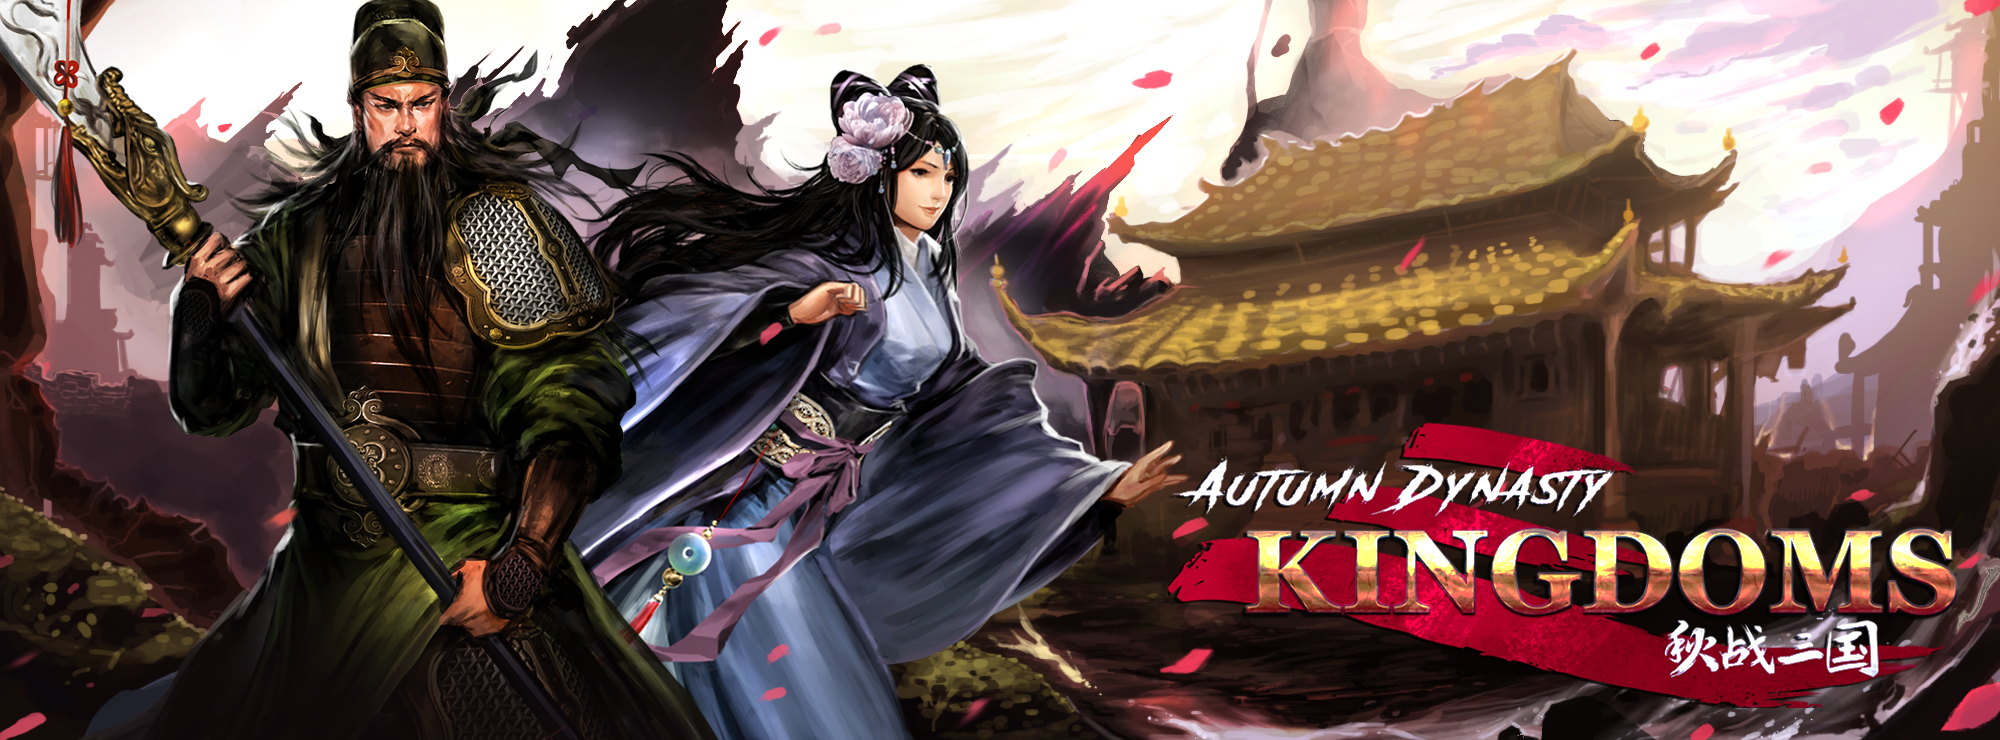 Autumn Dynasty: Three Kingdoms